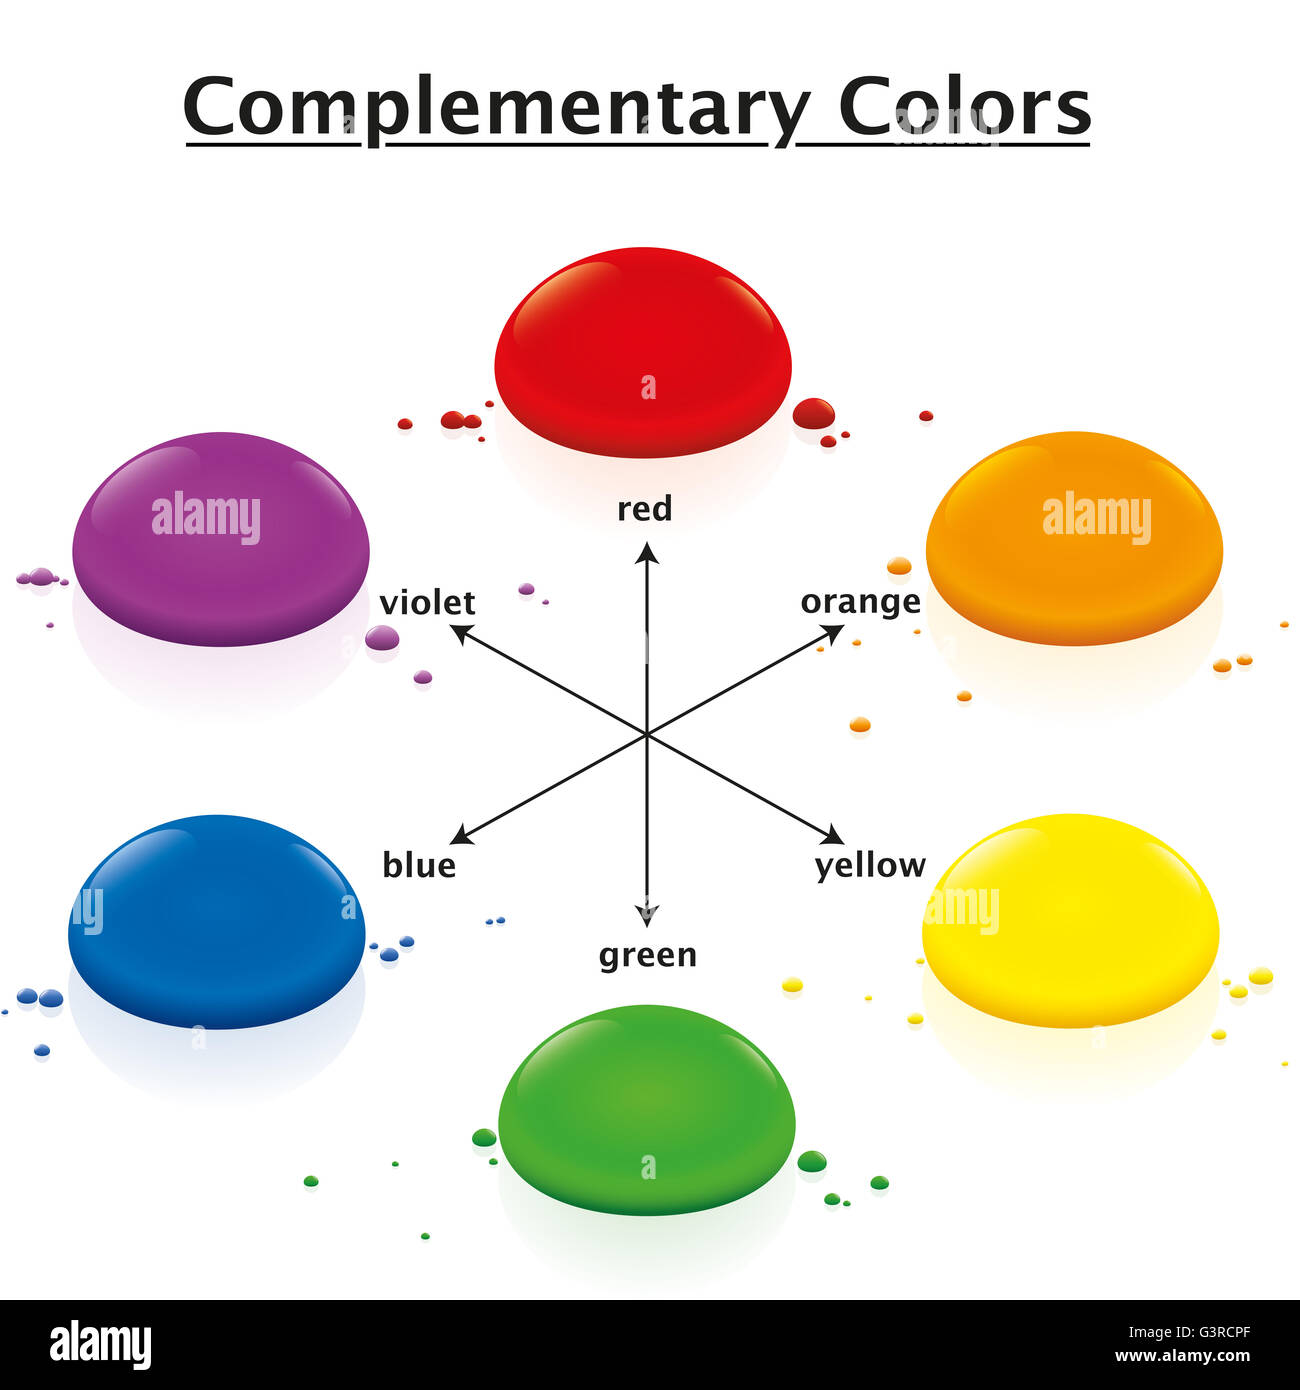 complementary colors chart opposing watercolor drops in a circle